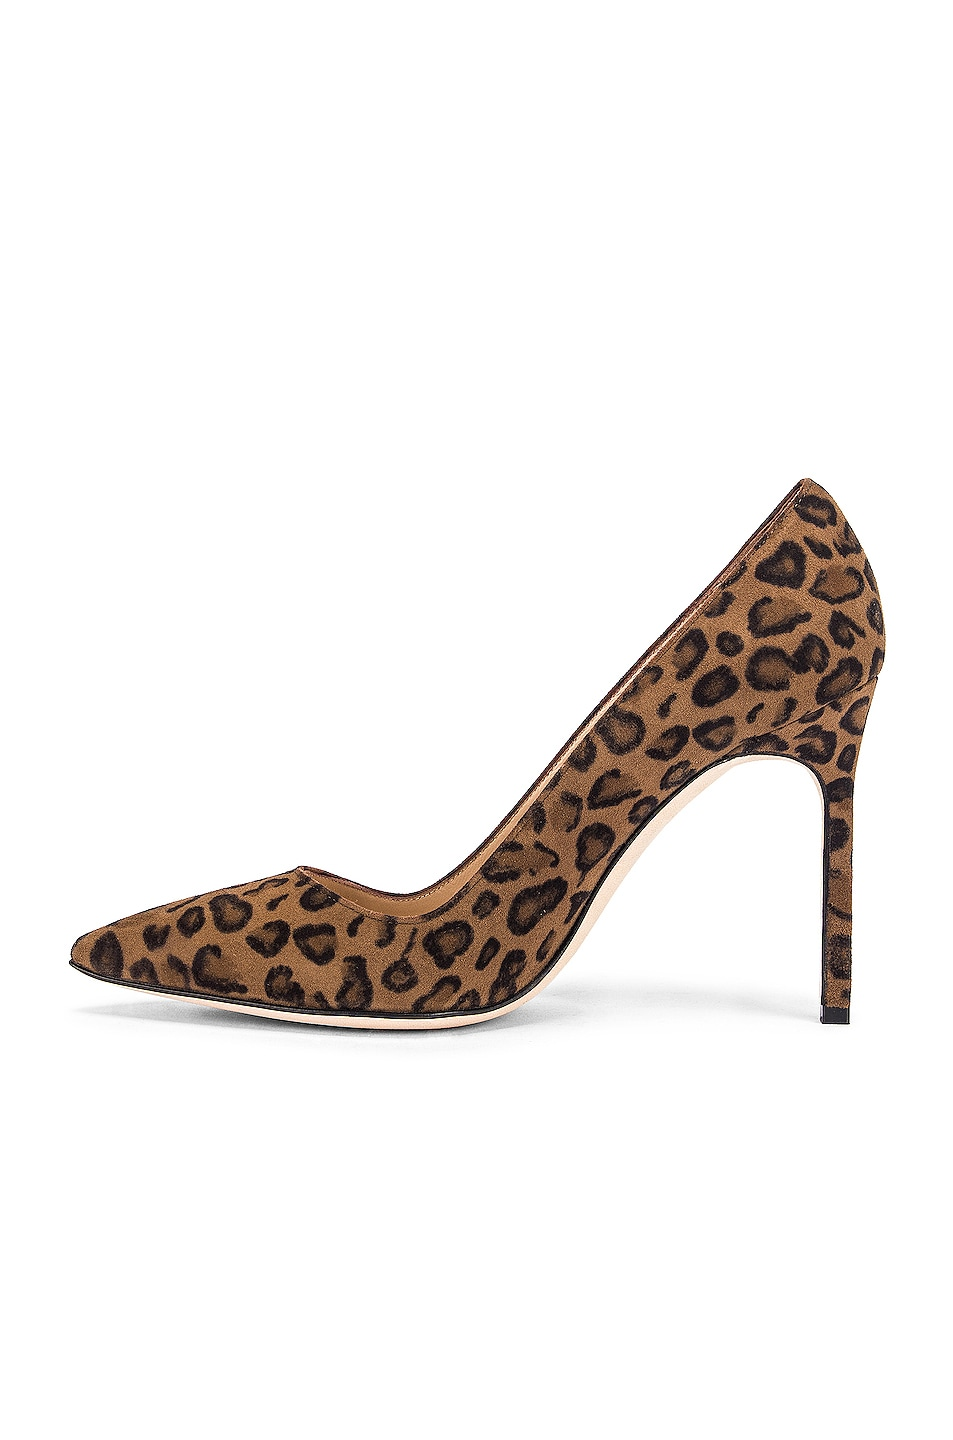 Image 5 of Manolo Blahnik BB 105 Pump in Leopard